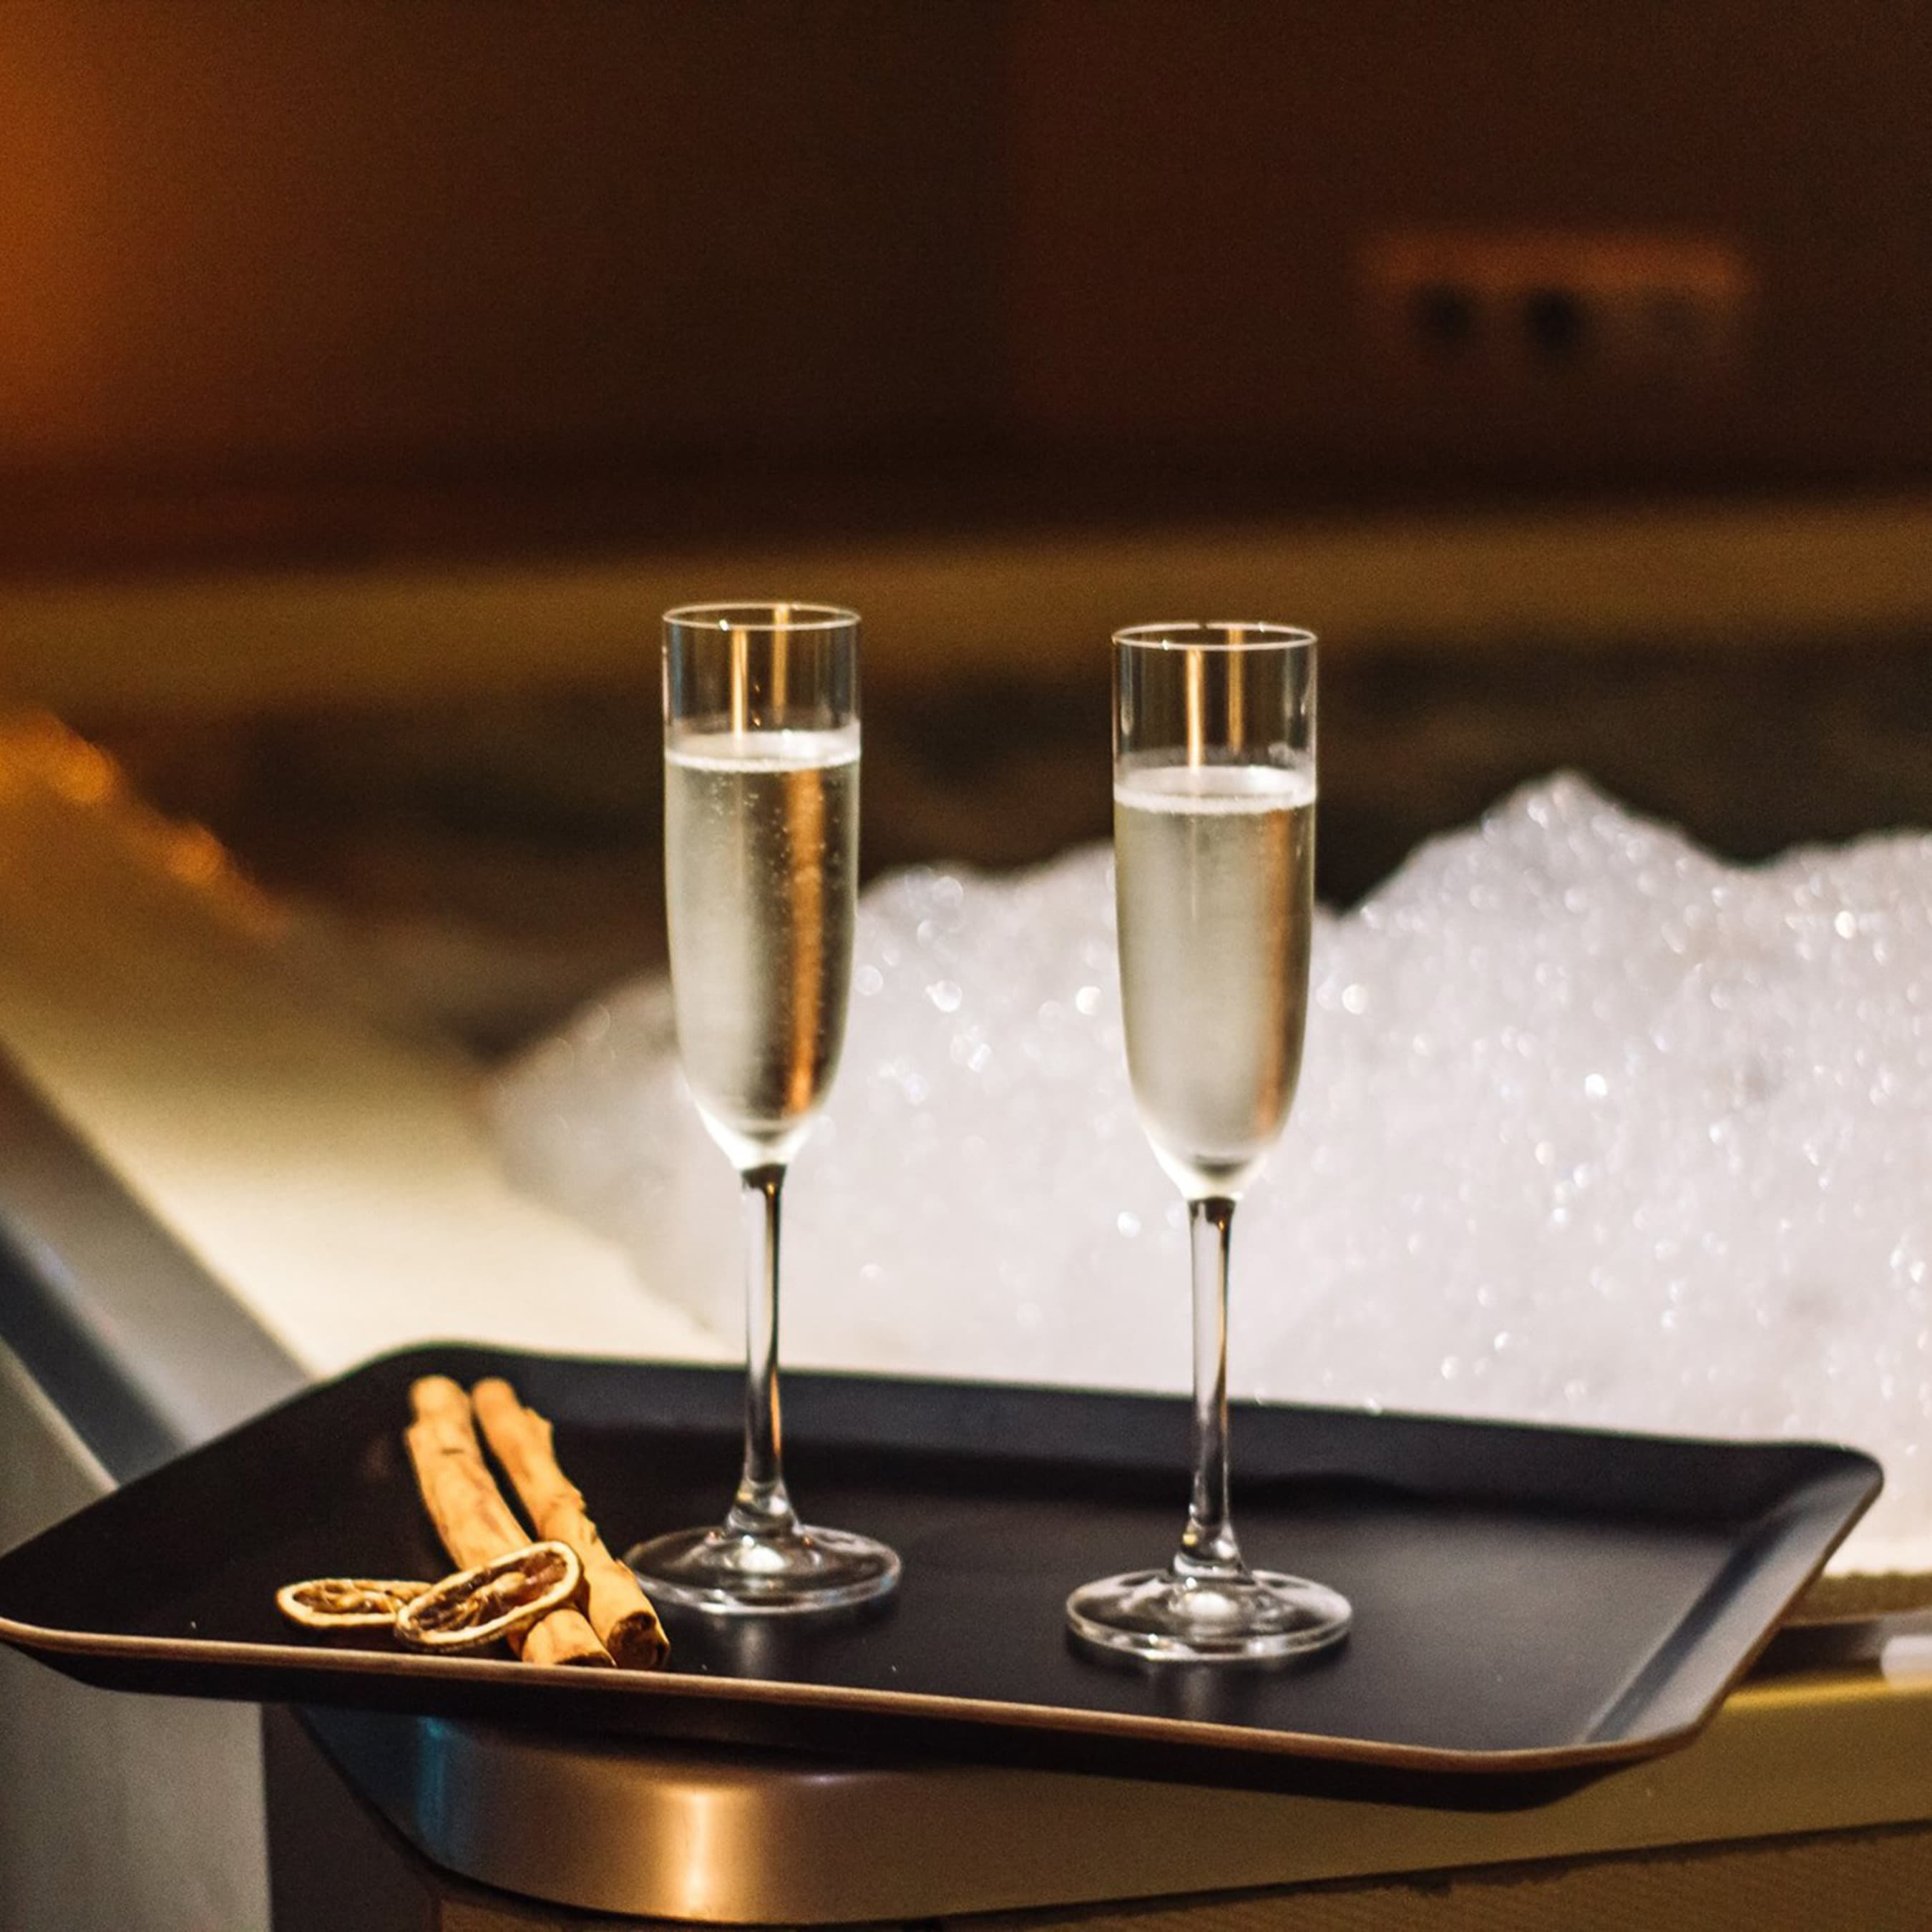 Aperitivo in the Spa